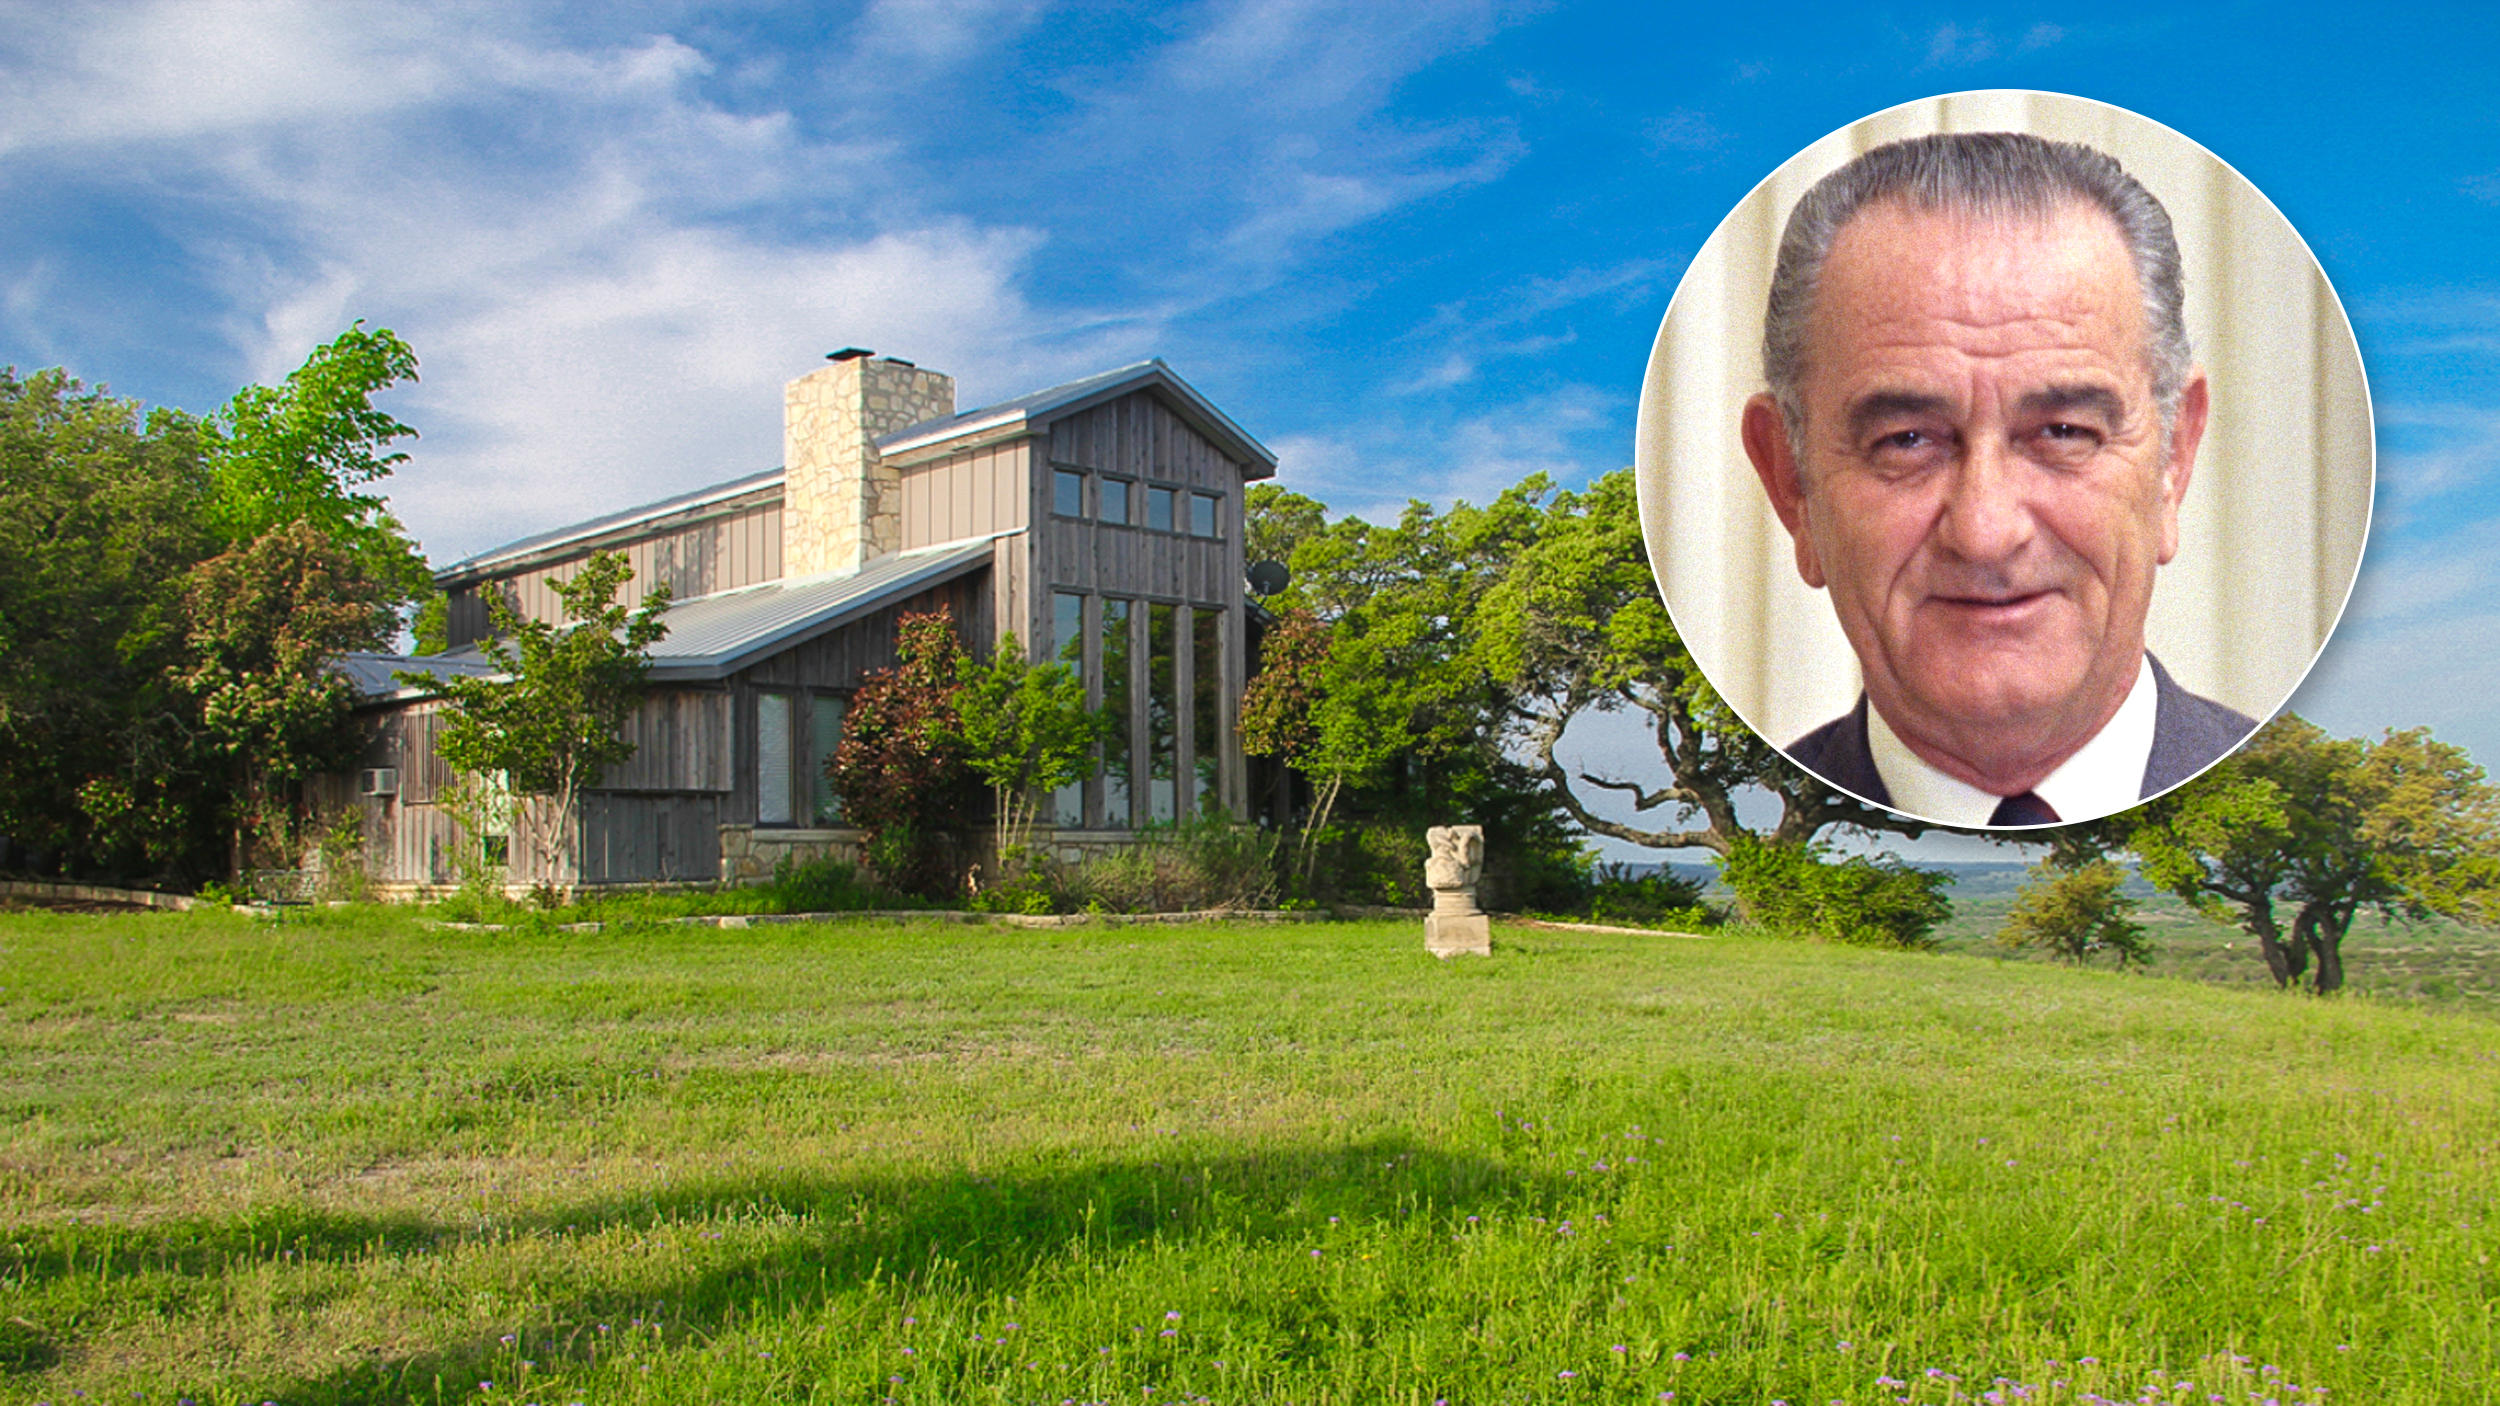 Former president lyndon b johnsons texas ranch for sale publicscrutiny Image collections